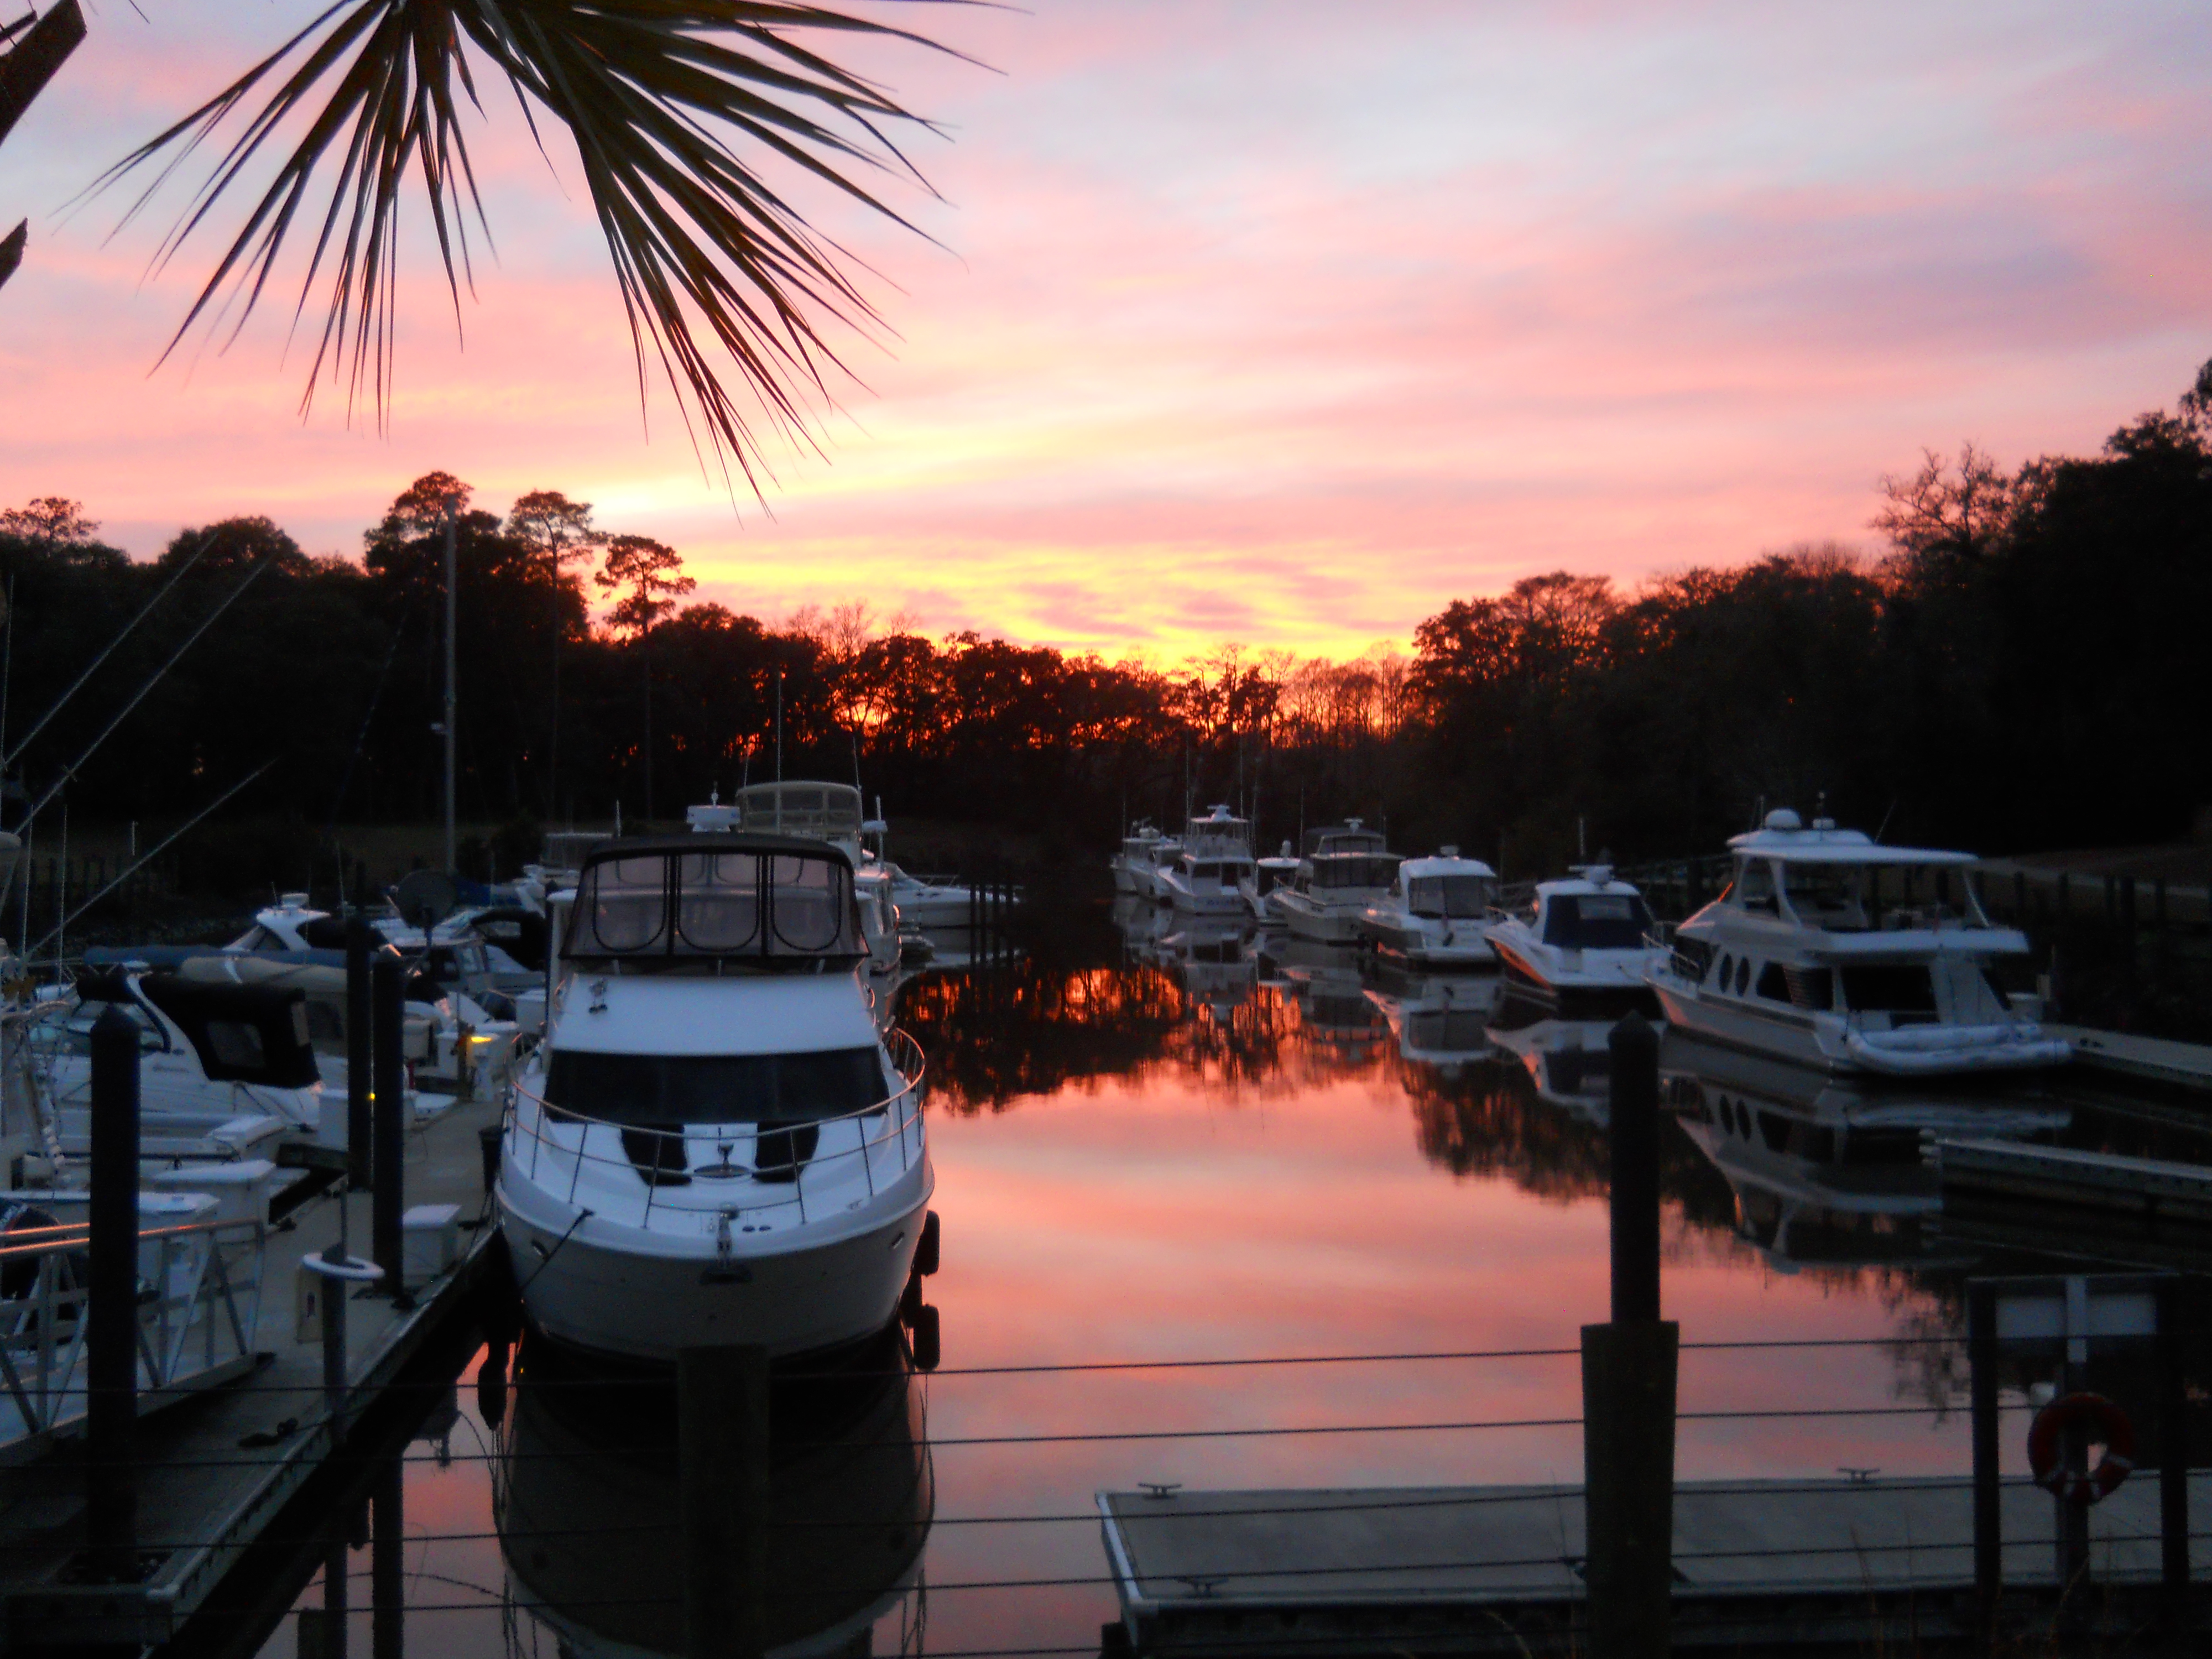 Sun setting over the water and boats at Reserve Harbor Yacht Club